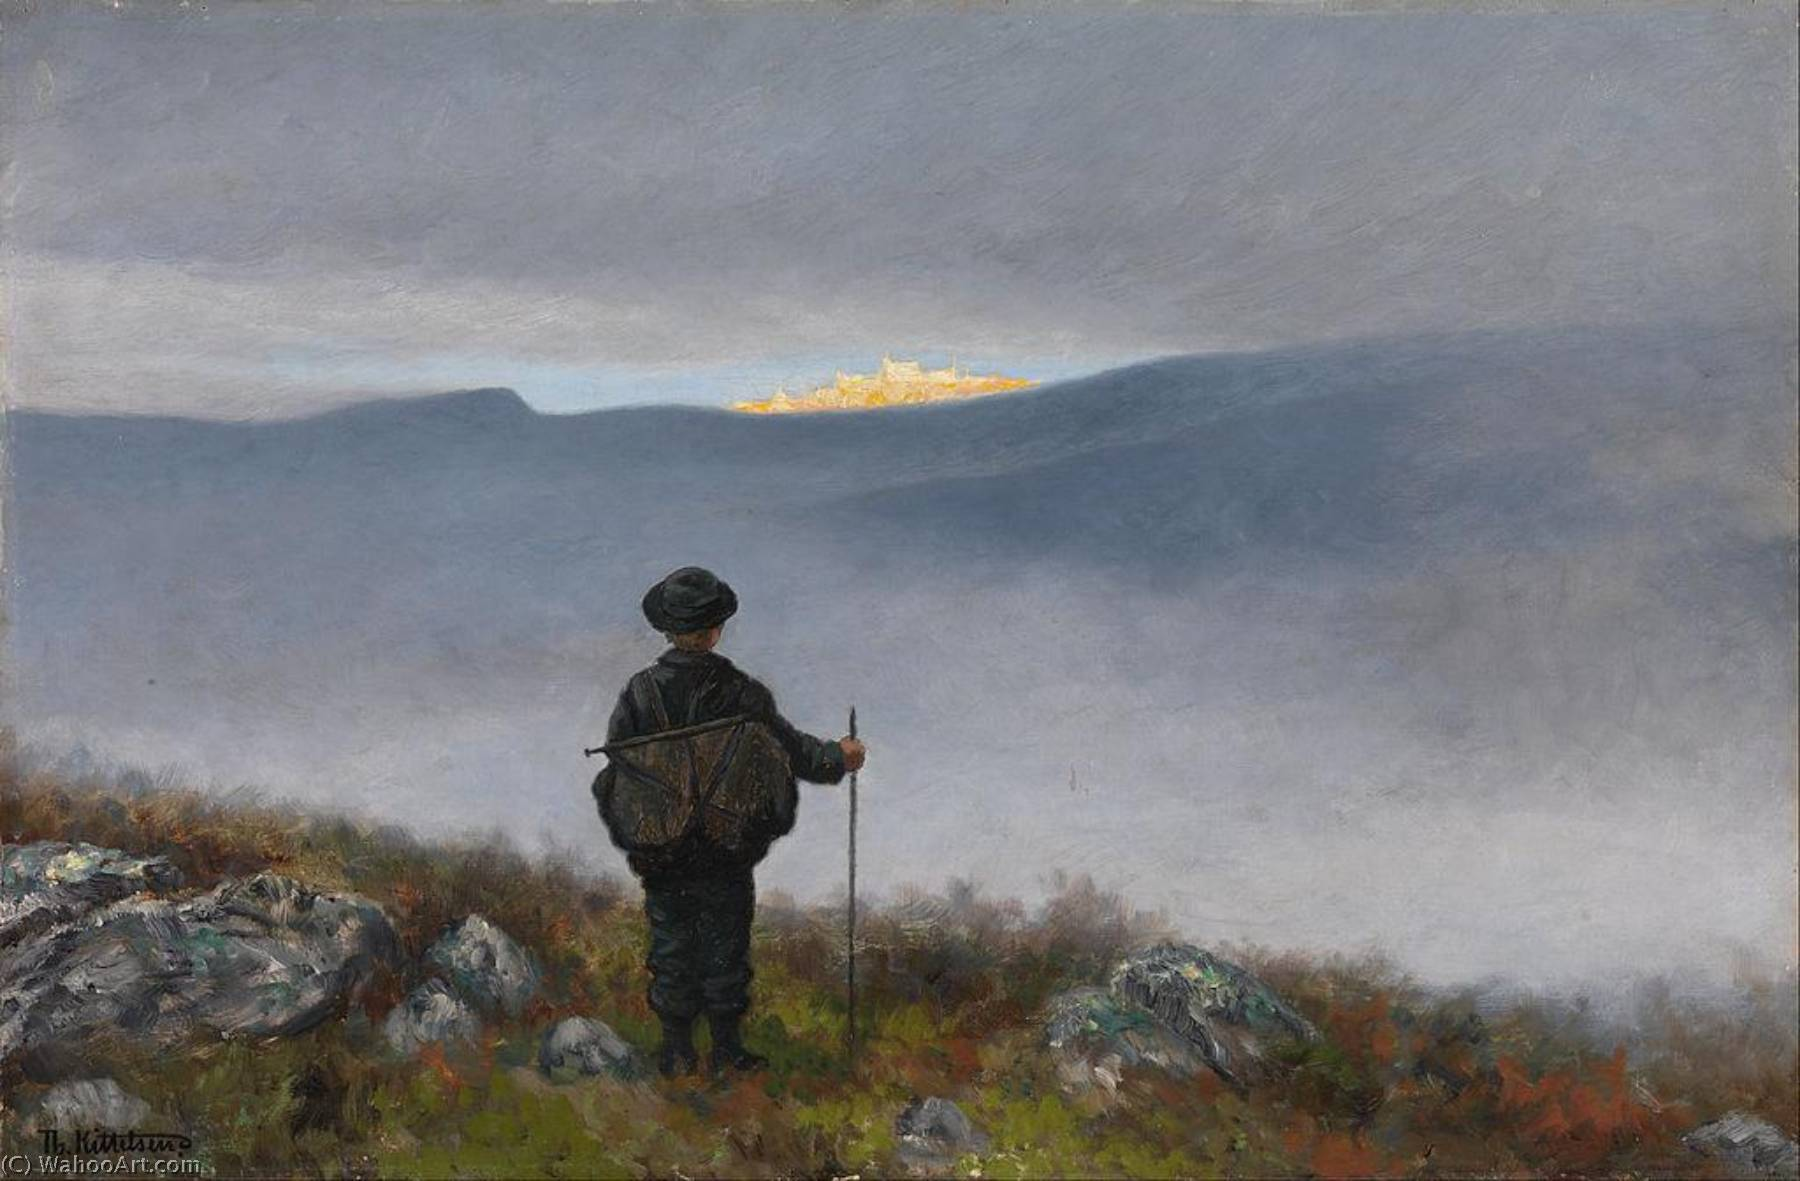 Far, far away Soria Moria Palace shimmered like Gold, 1900 by Theodor Kittelsen (1857-1914) | Painting Copy | WahooArt.com